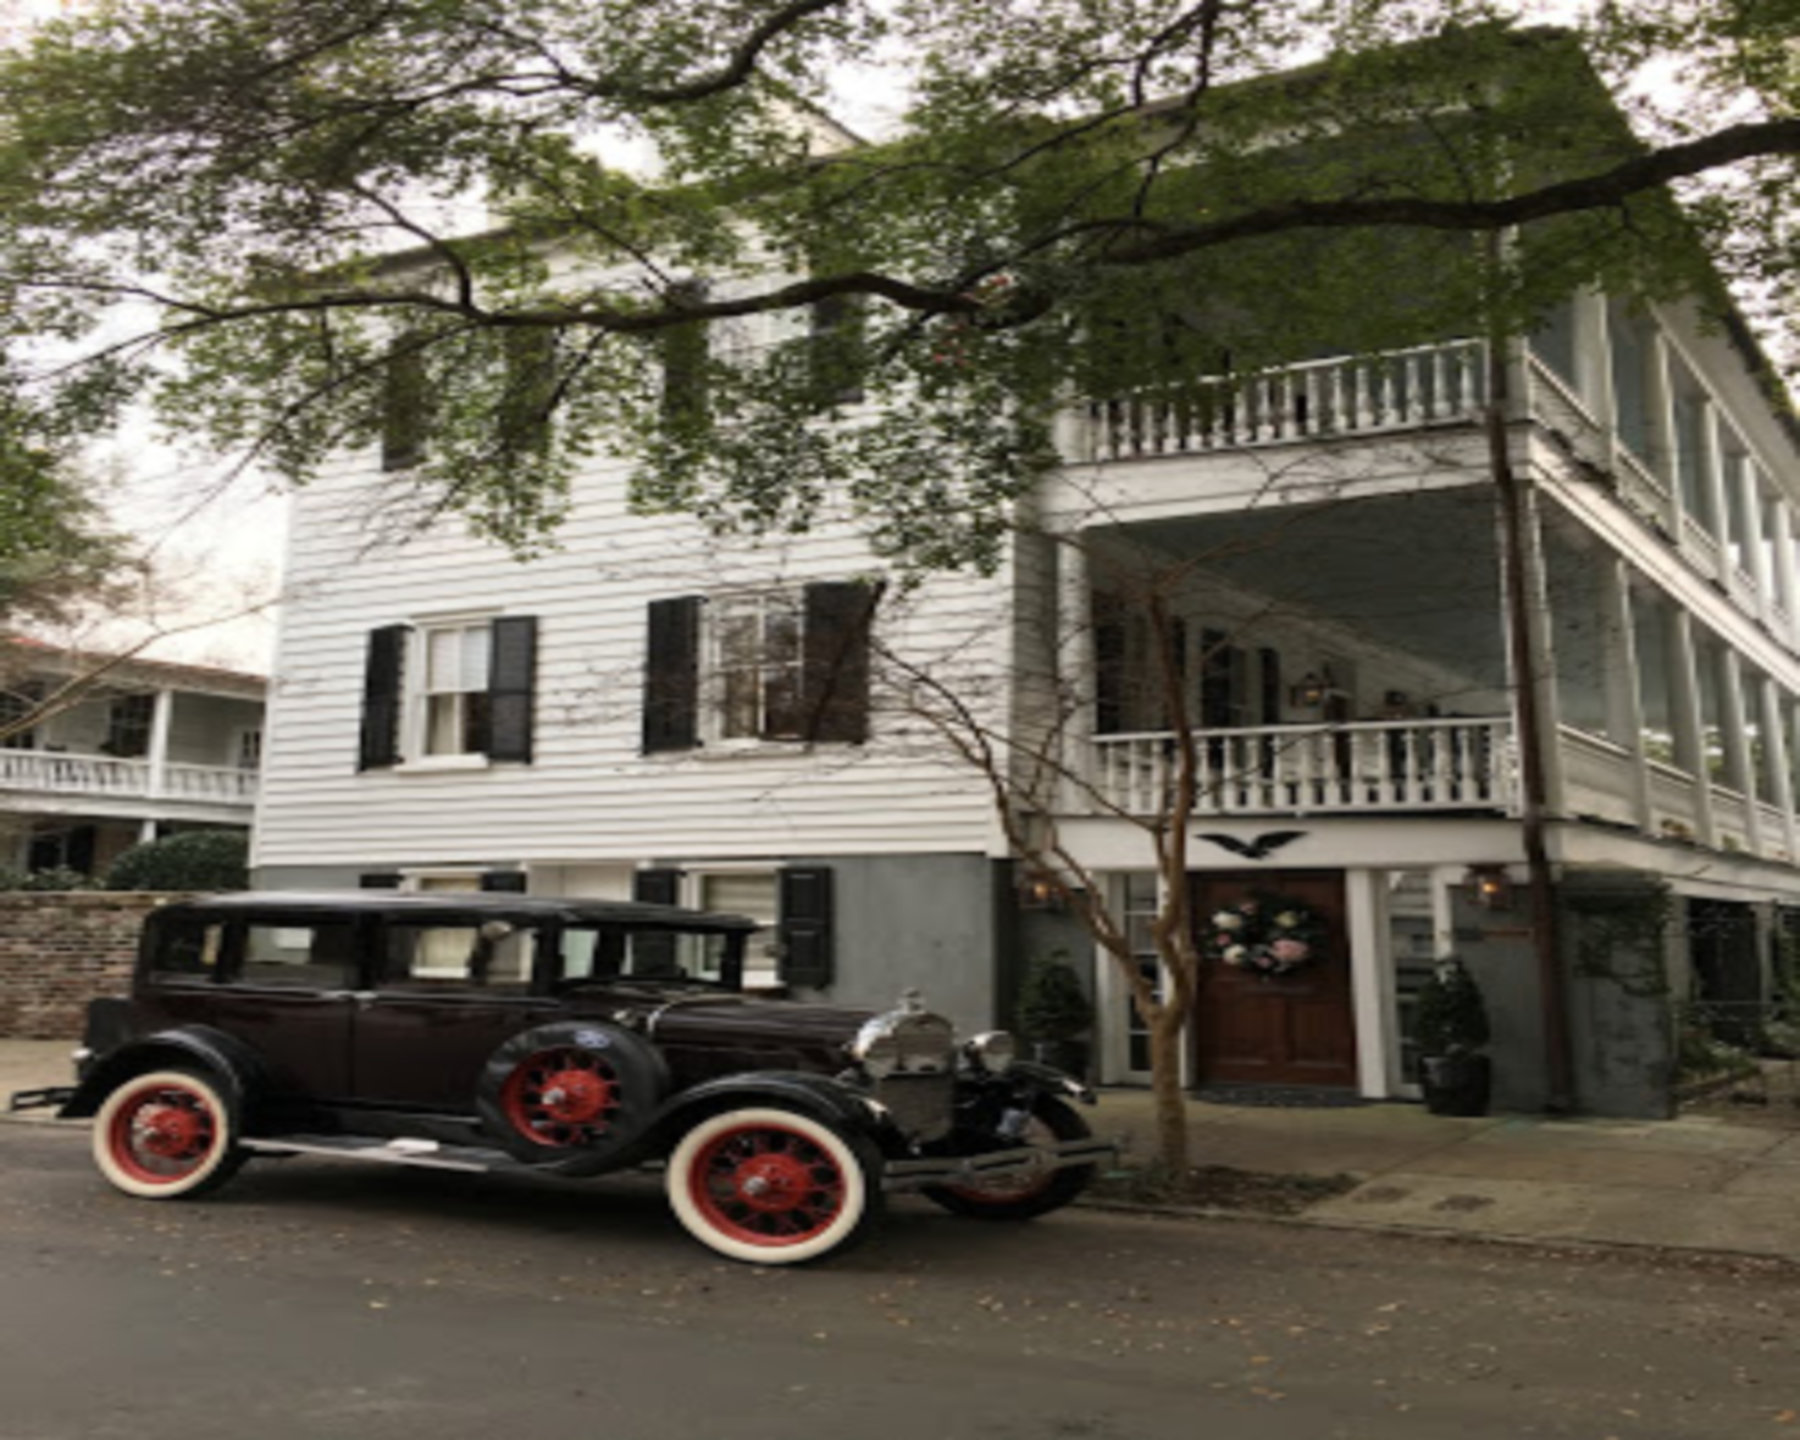 A car parked in front of a building at 1837 Bed and Breakfast.